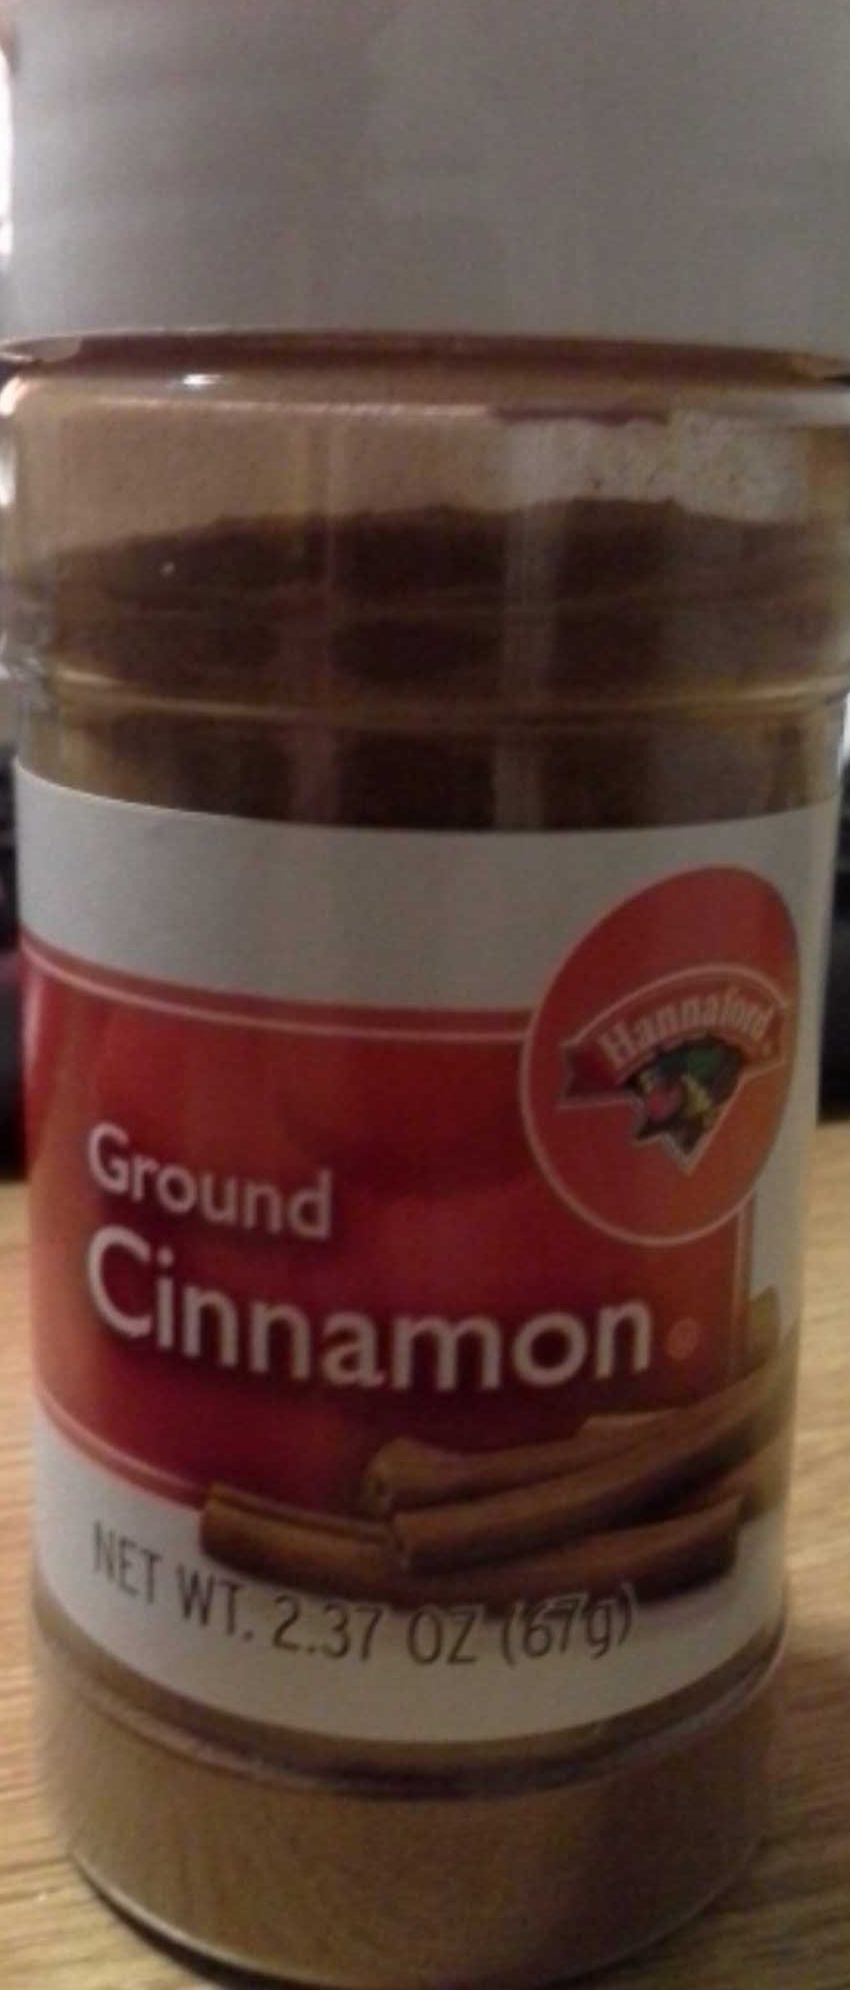 Ground Cinnamon - Product